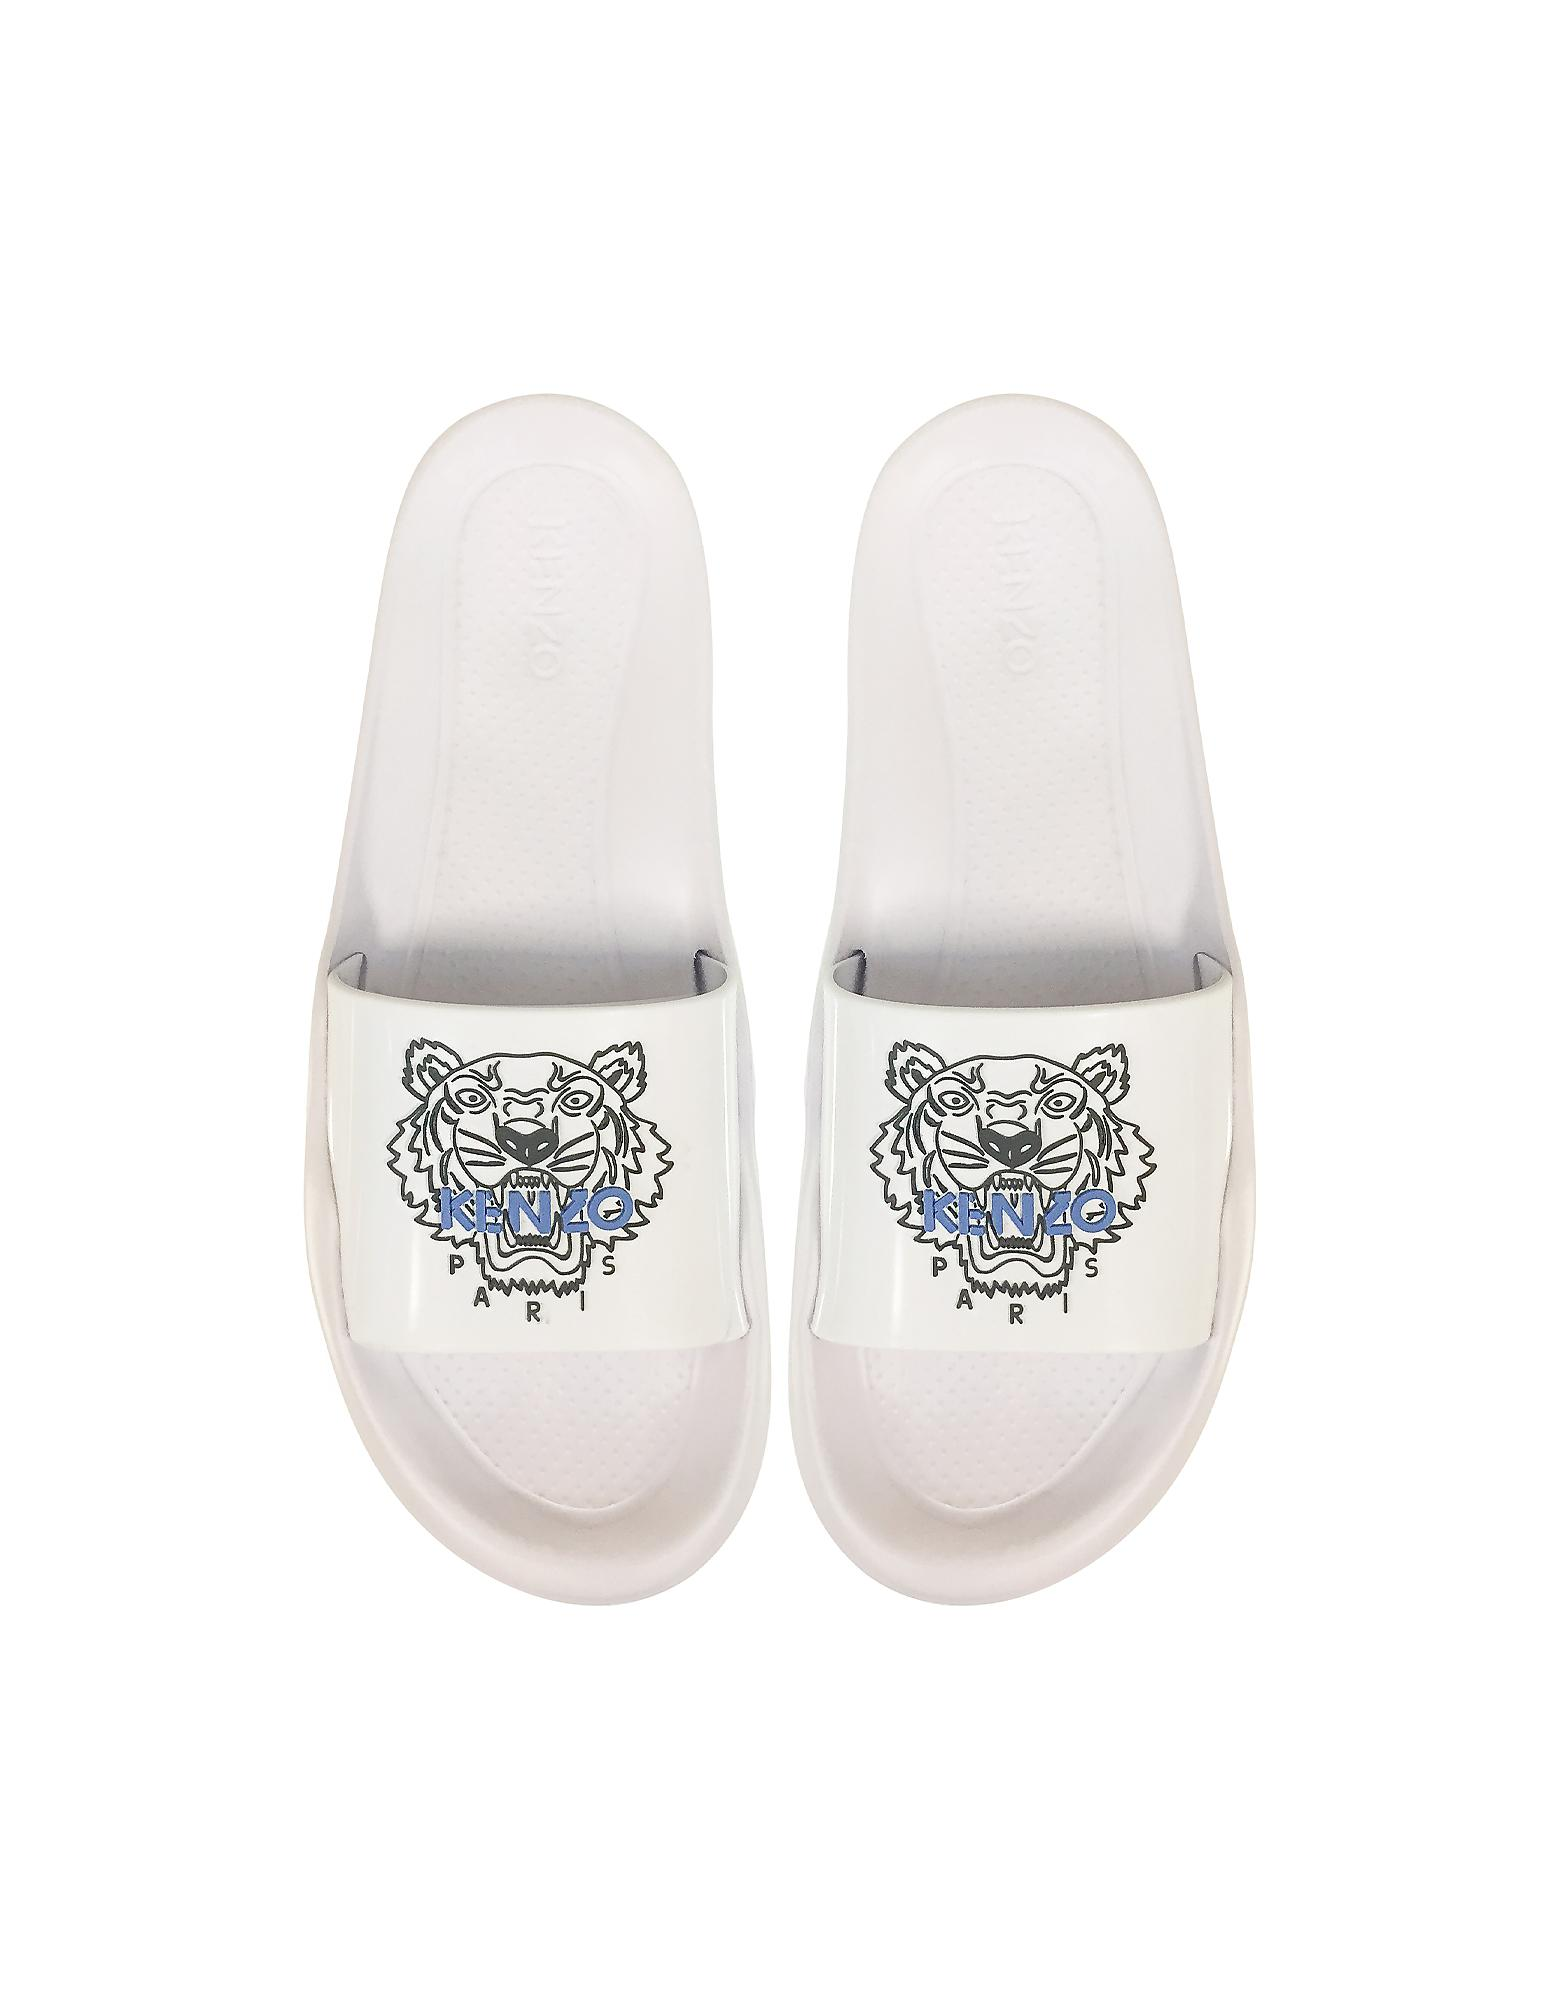 b2dca7439fb2 Lyst - KENZO White Men s Pool Sandals W tiger Logo in White for Men